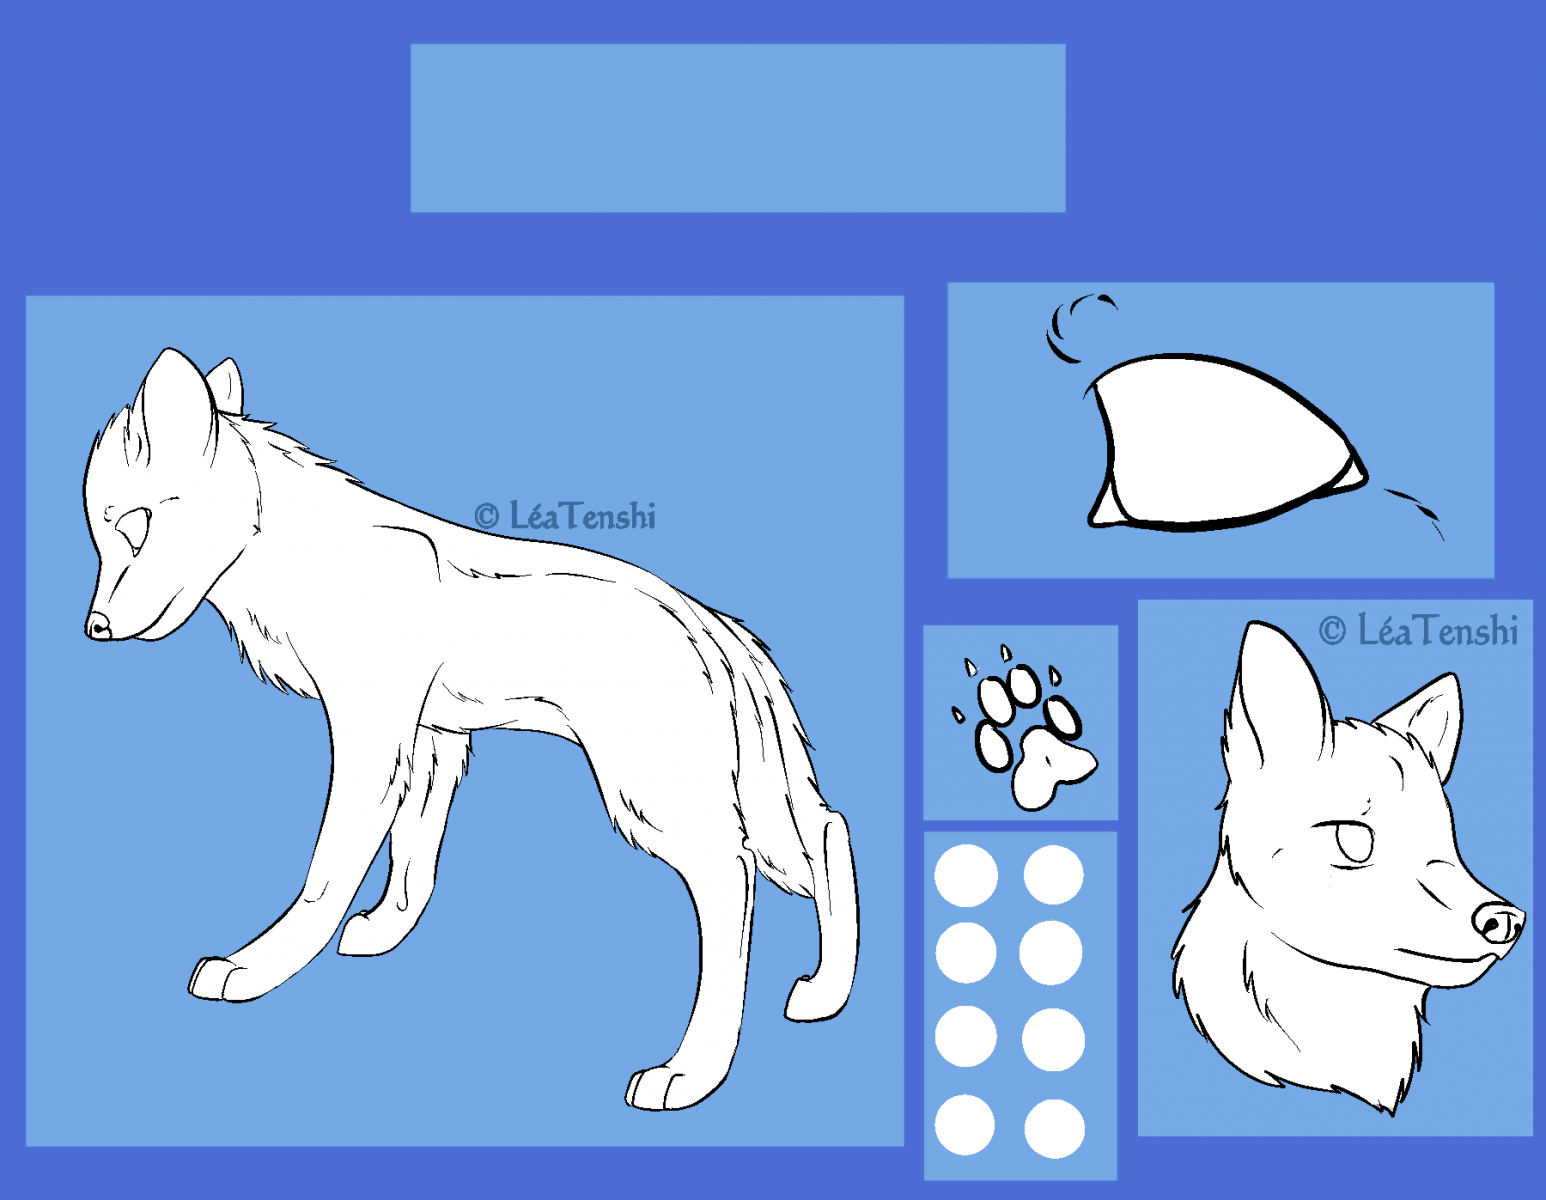 f2u___canine_references_character_sheet_by_leatenshi-d5j7g1e.png